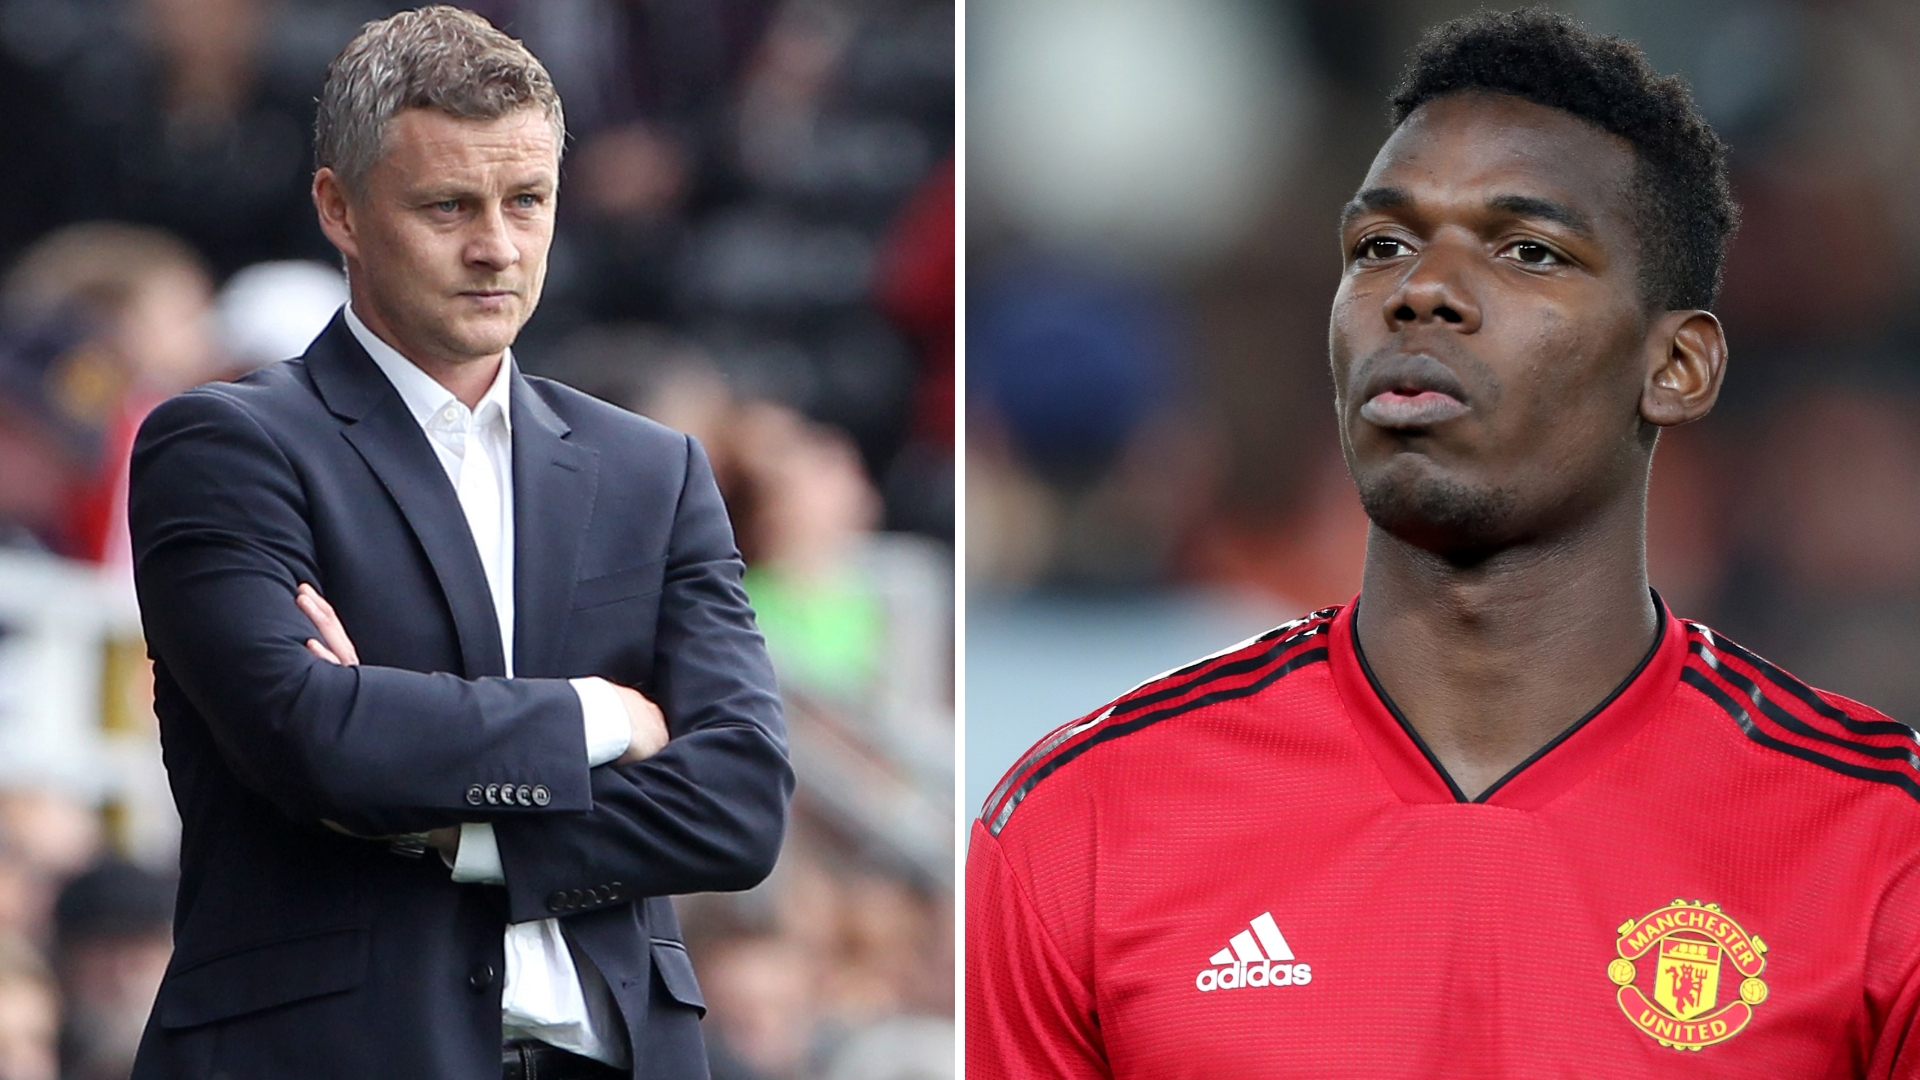 Ole Gunnar Solskjær Revealed His Plans For Paul Pogba At Manchester United In August